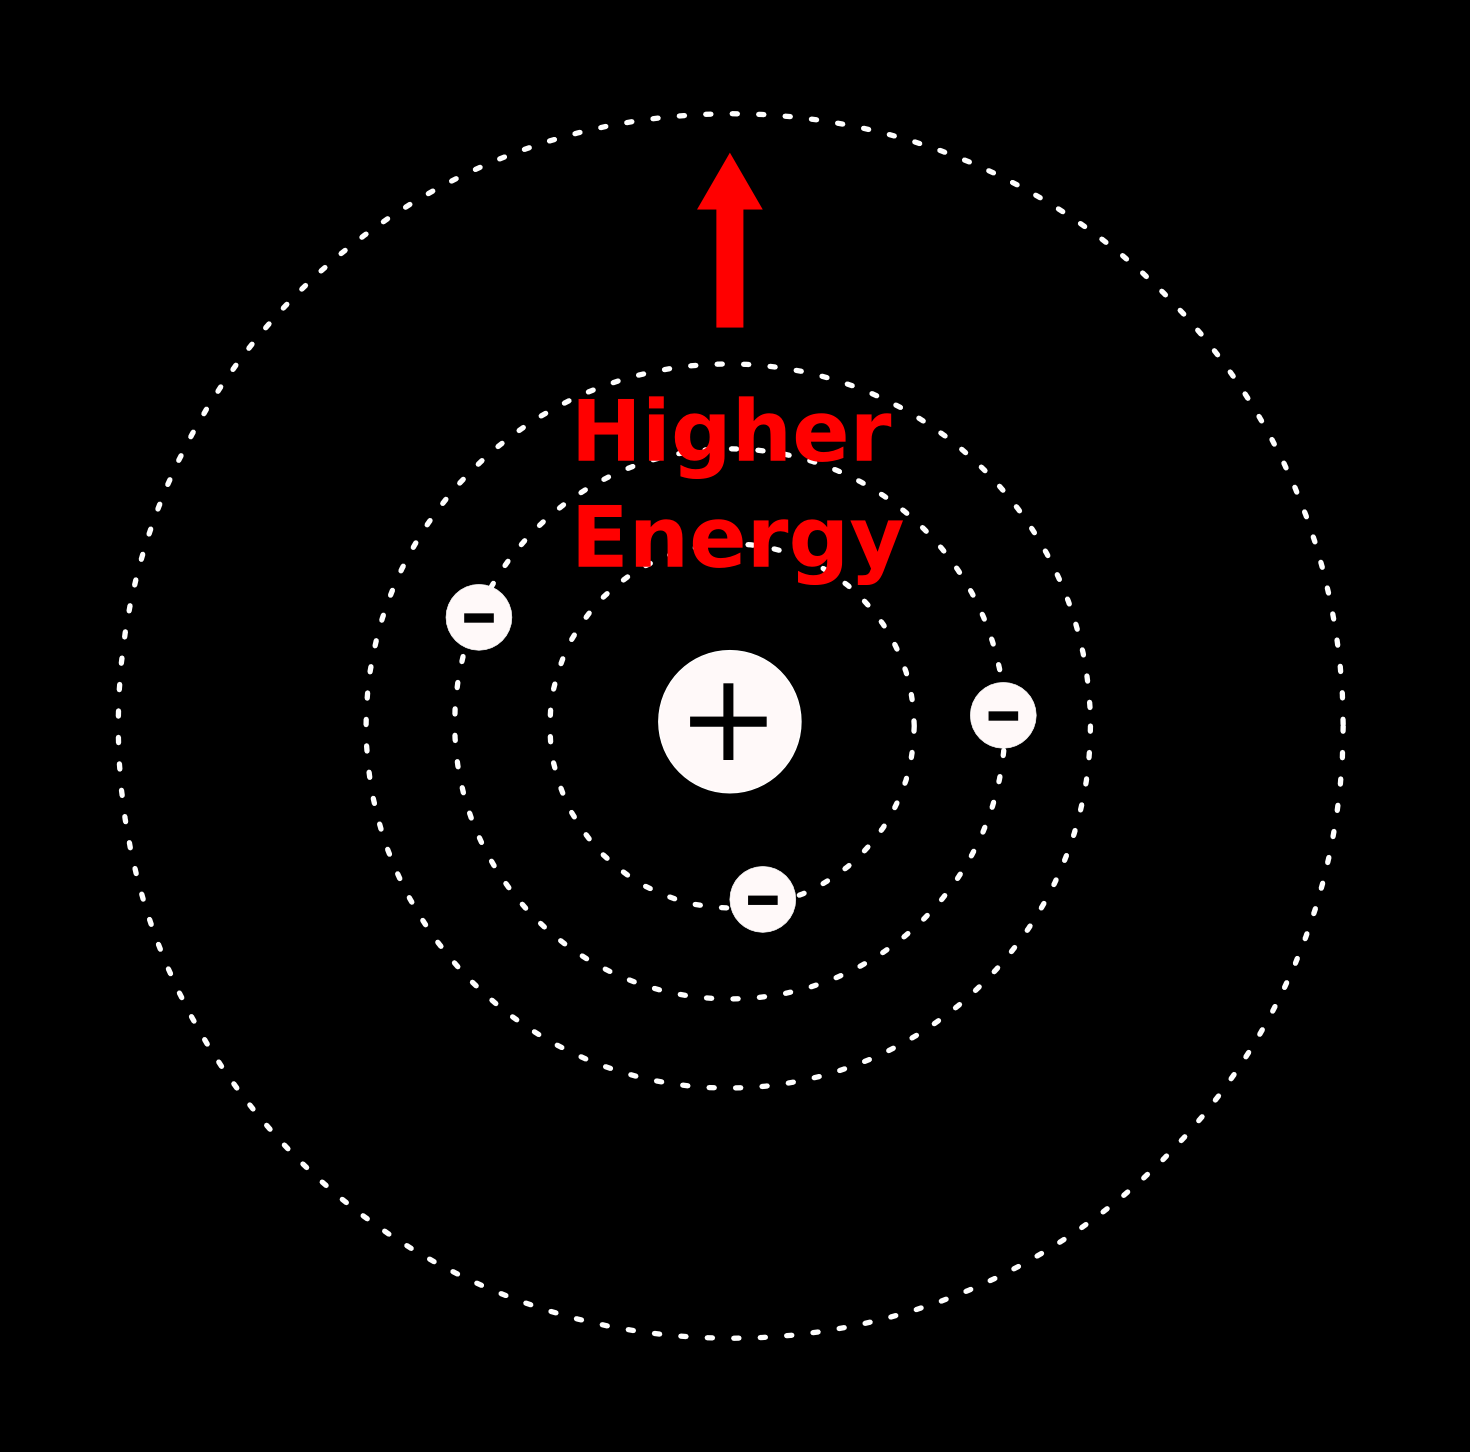 Atomic energy levels